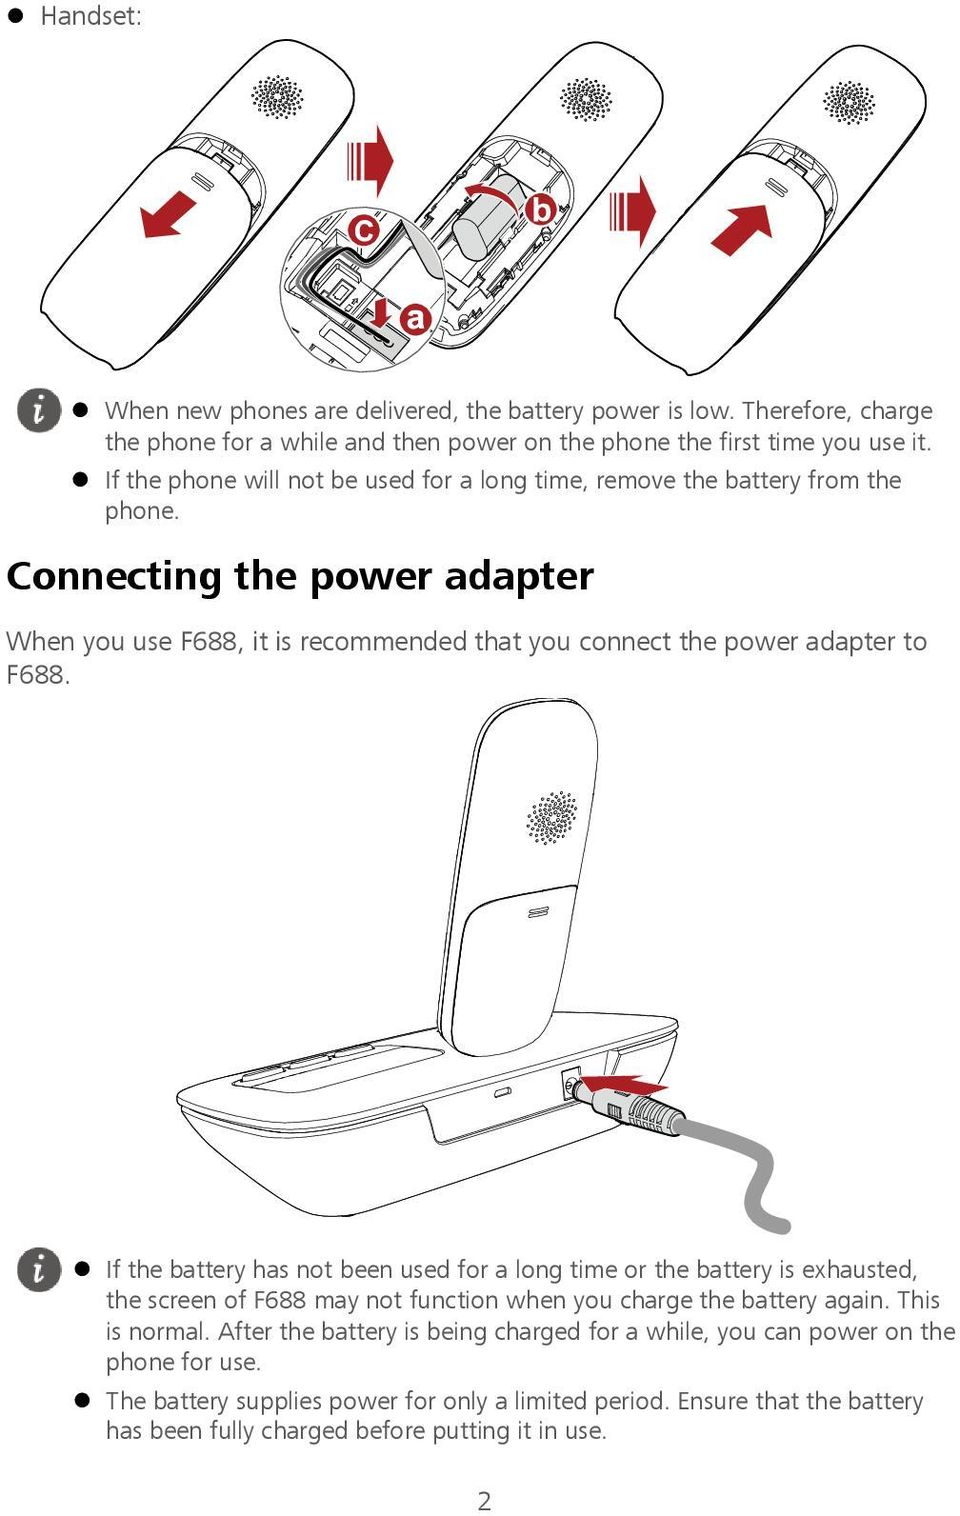 Connecting the power adapter When you use F688, it is recommended that you connect the power adapter to F688.